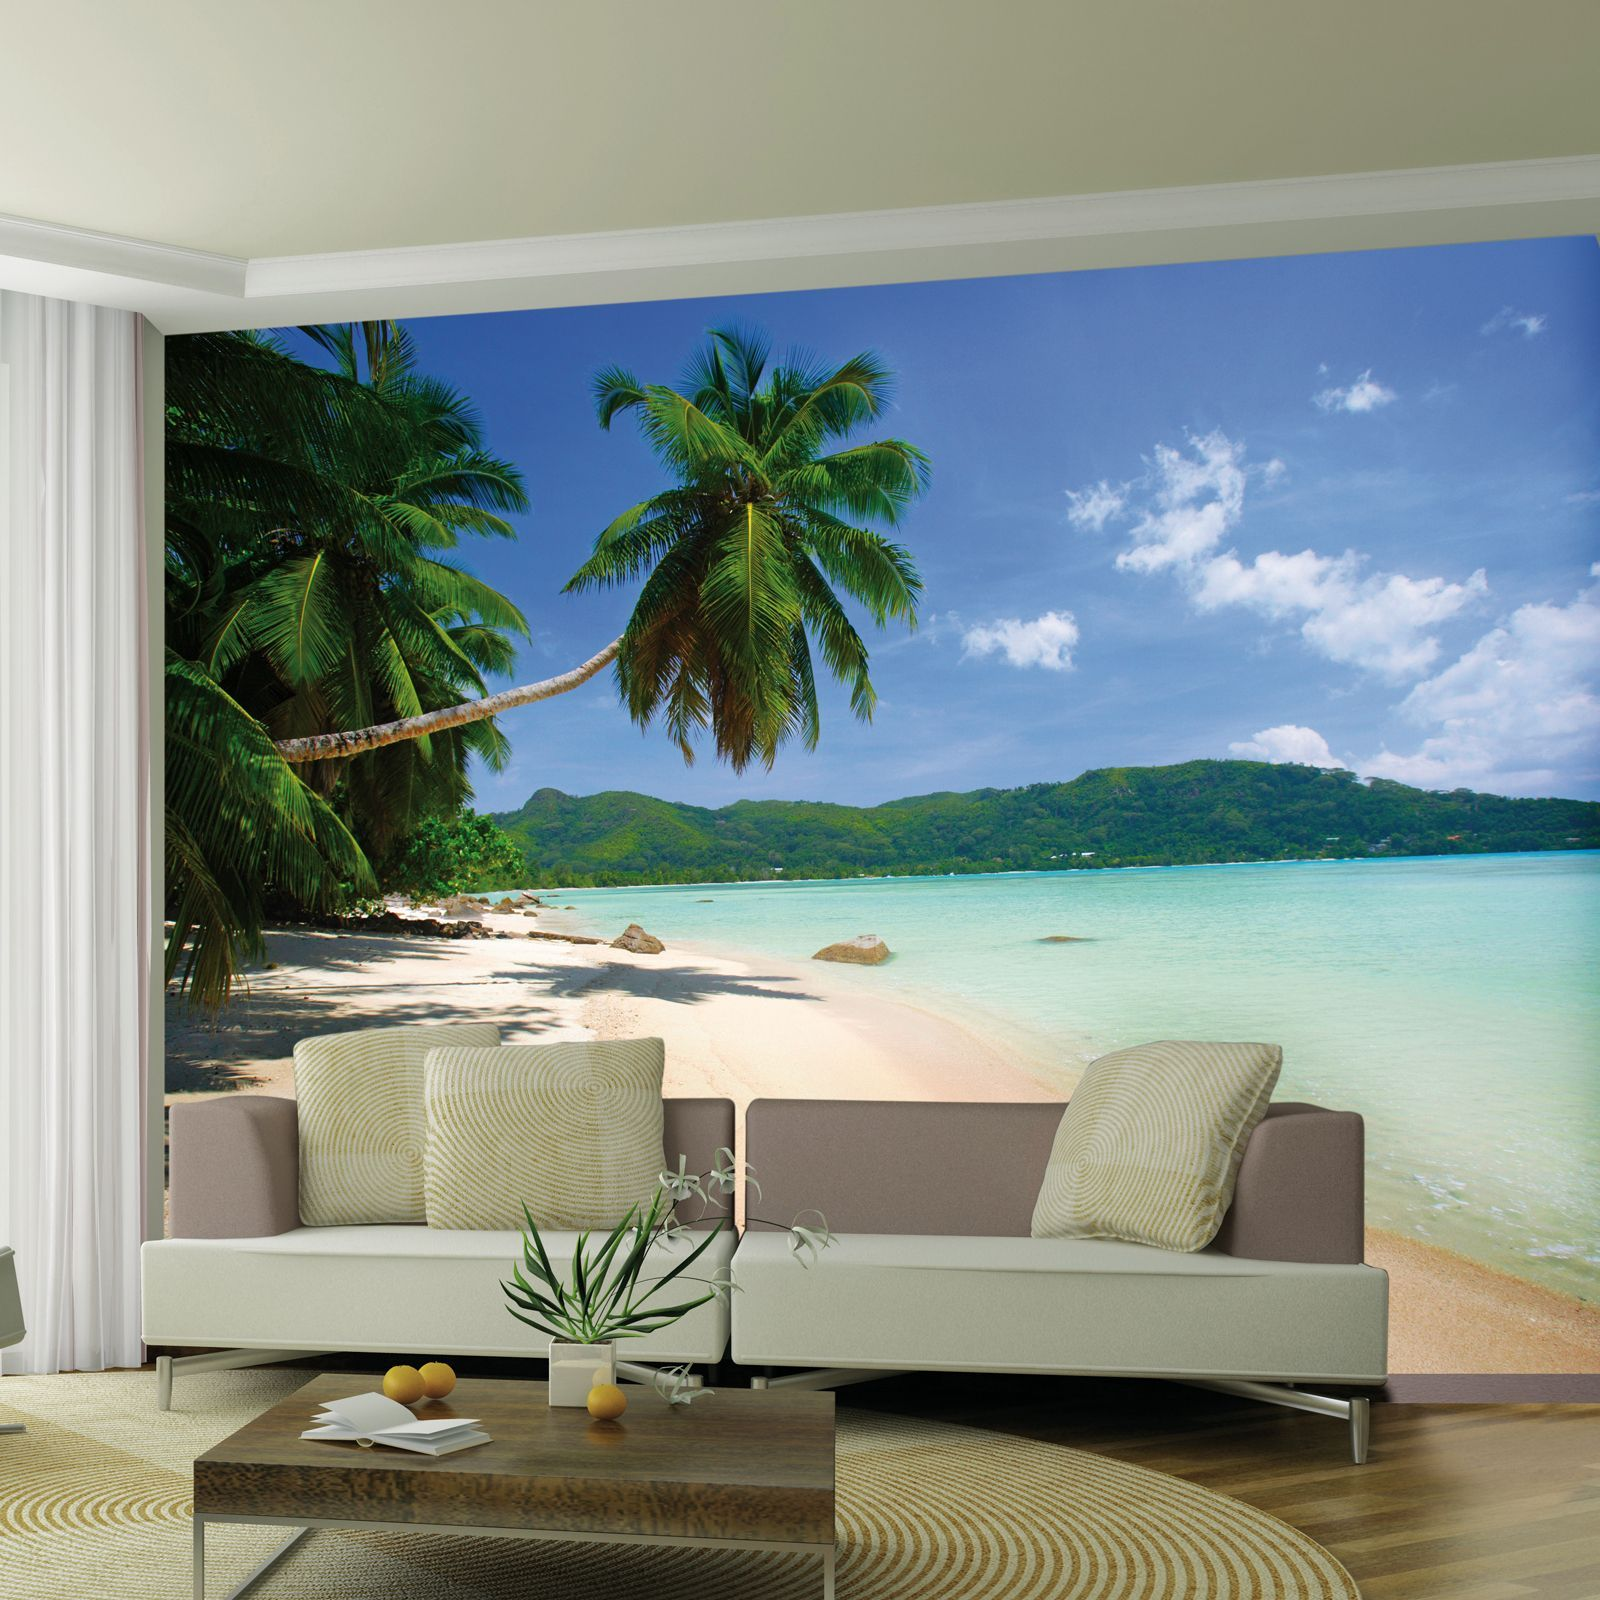 Large wallpaper feature wall murals landscapes for Beach mural for wall